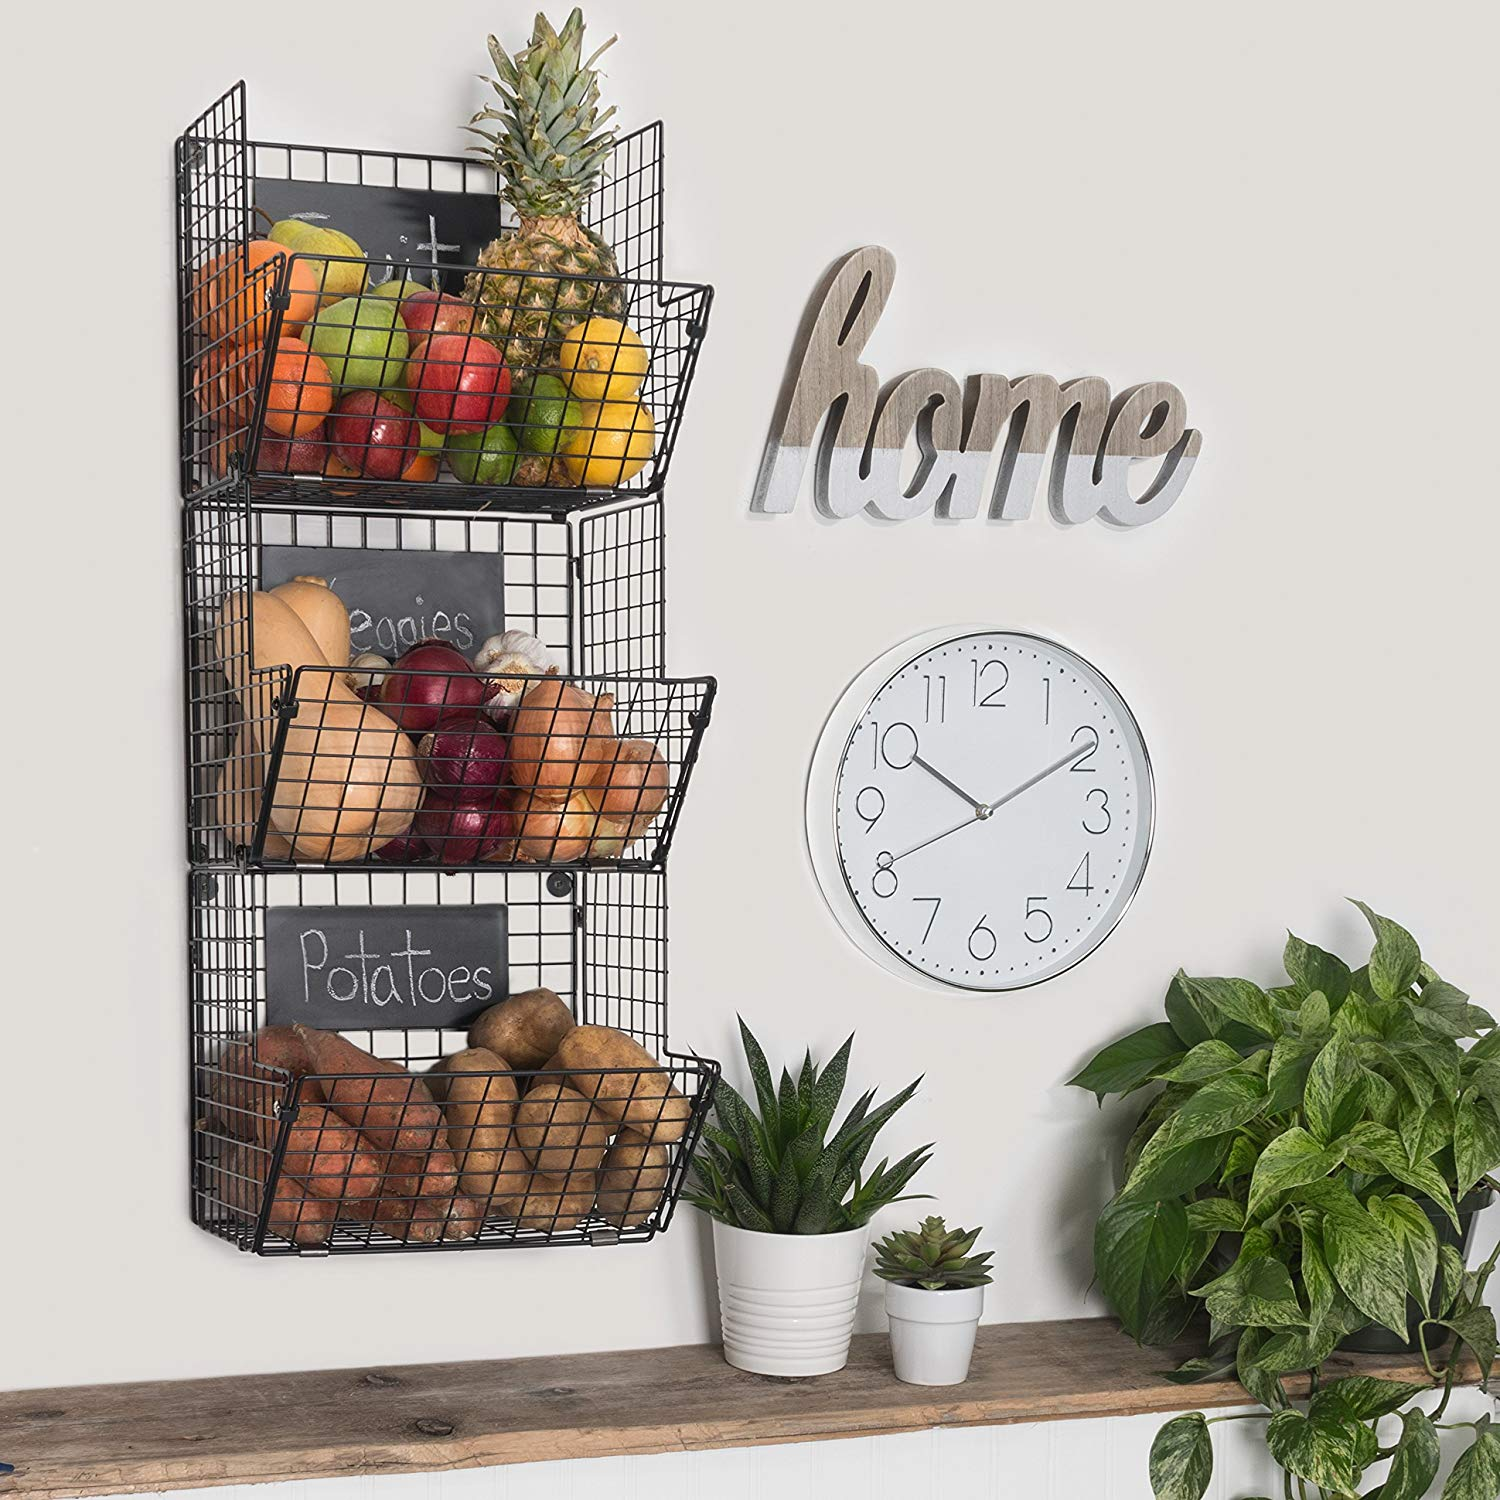 11 Things to Help You Maximize Your Kitchen Cabinet Storage 3 Tier Wall Mounted Wire Baskets With Chalkboard #Organize #Organization #OrganizedKitchen #Kitchen #KitchenCabinets #KitchenStorage #CabinetStorage #Storage